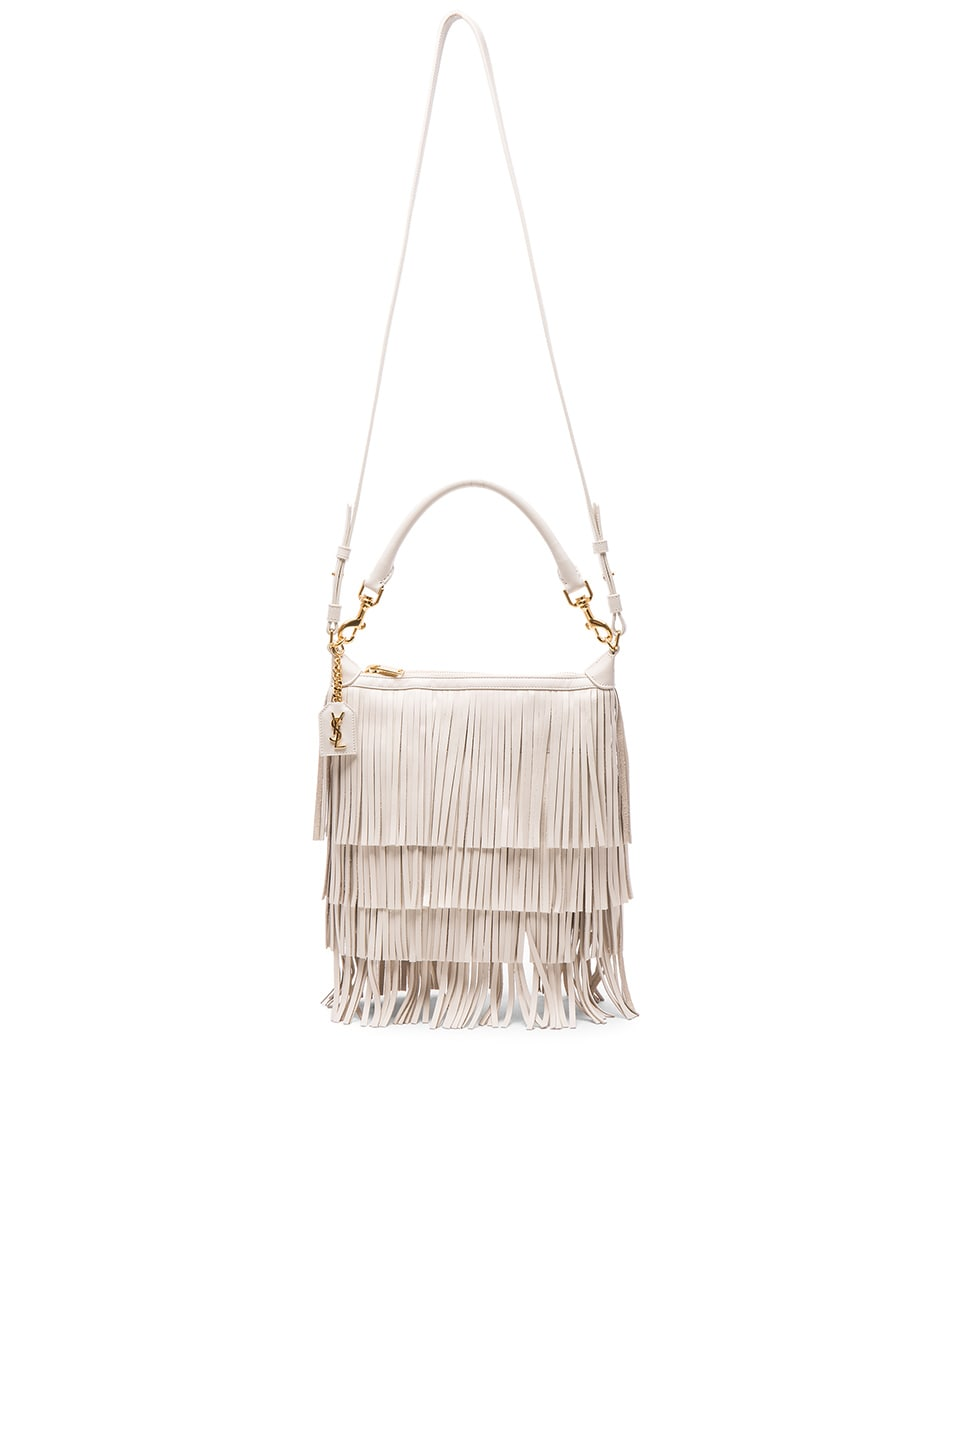 90a91961ad3 Image 6 of Saint Laurent Small Fringe Emmanuelle Hobo Bag in Porcelain